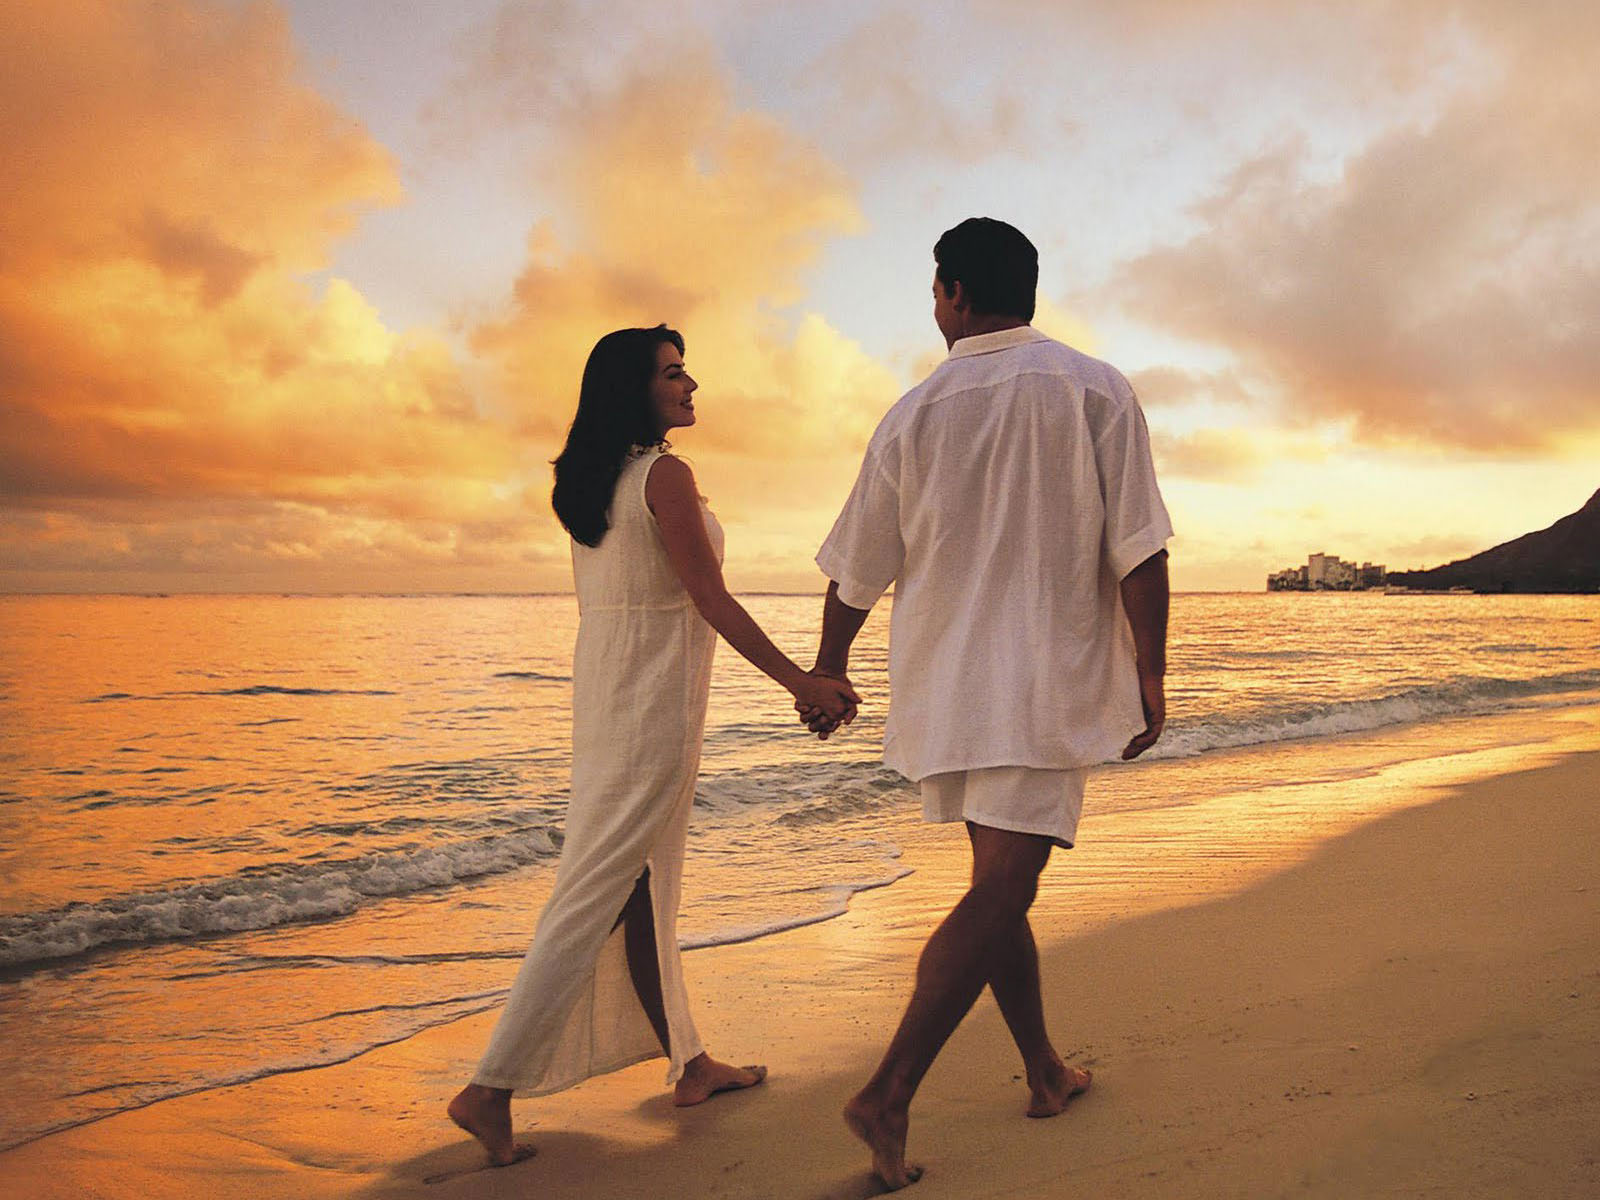 Love Wallpaper New Latest : wallpapers: Beach Love Wallpapers